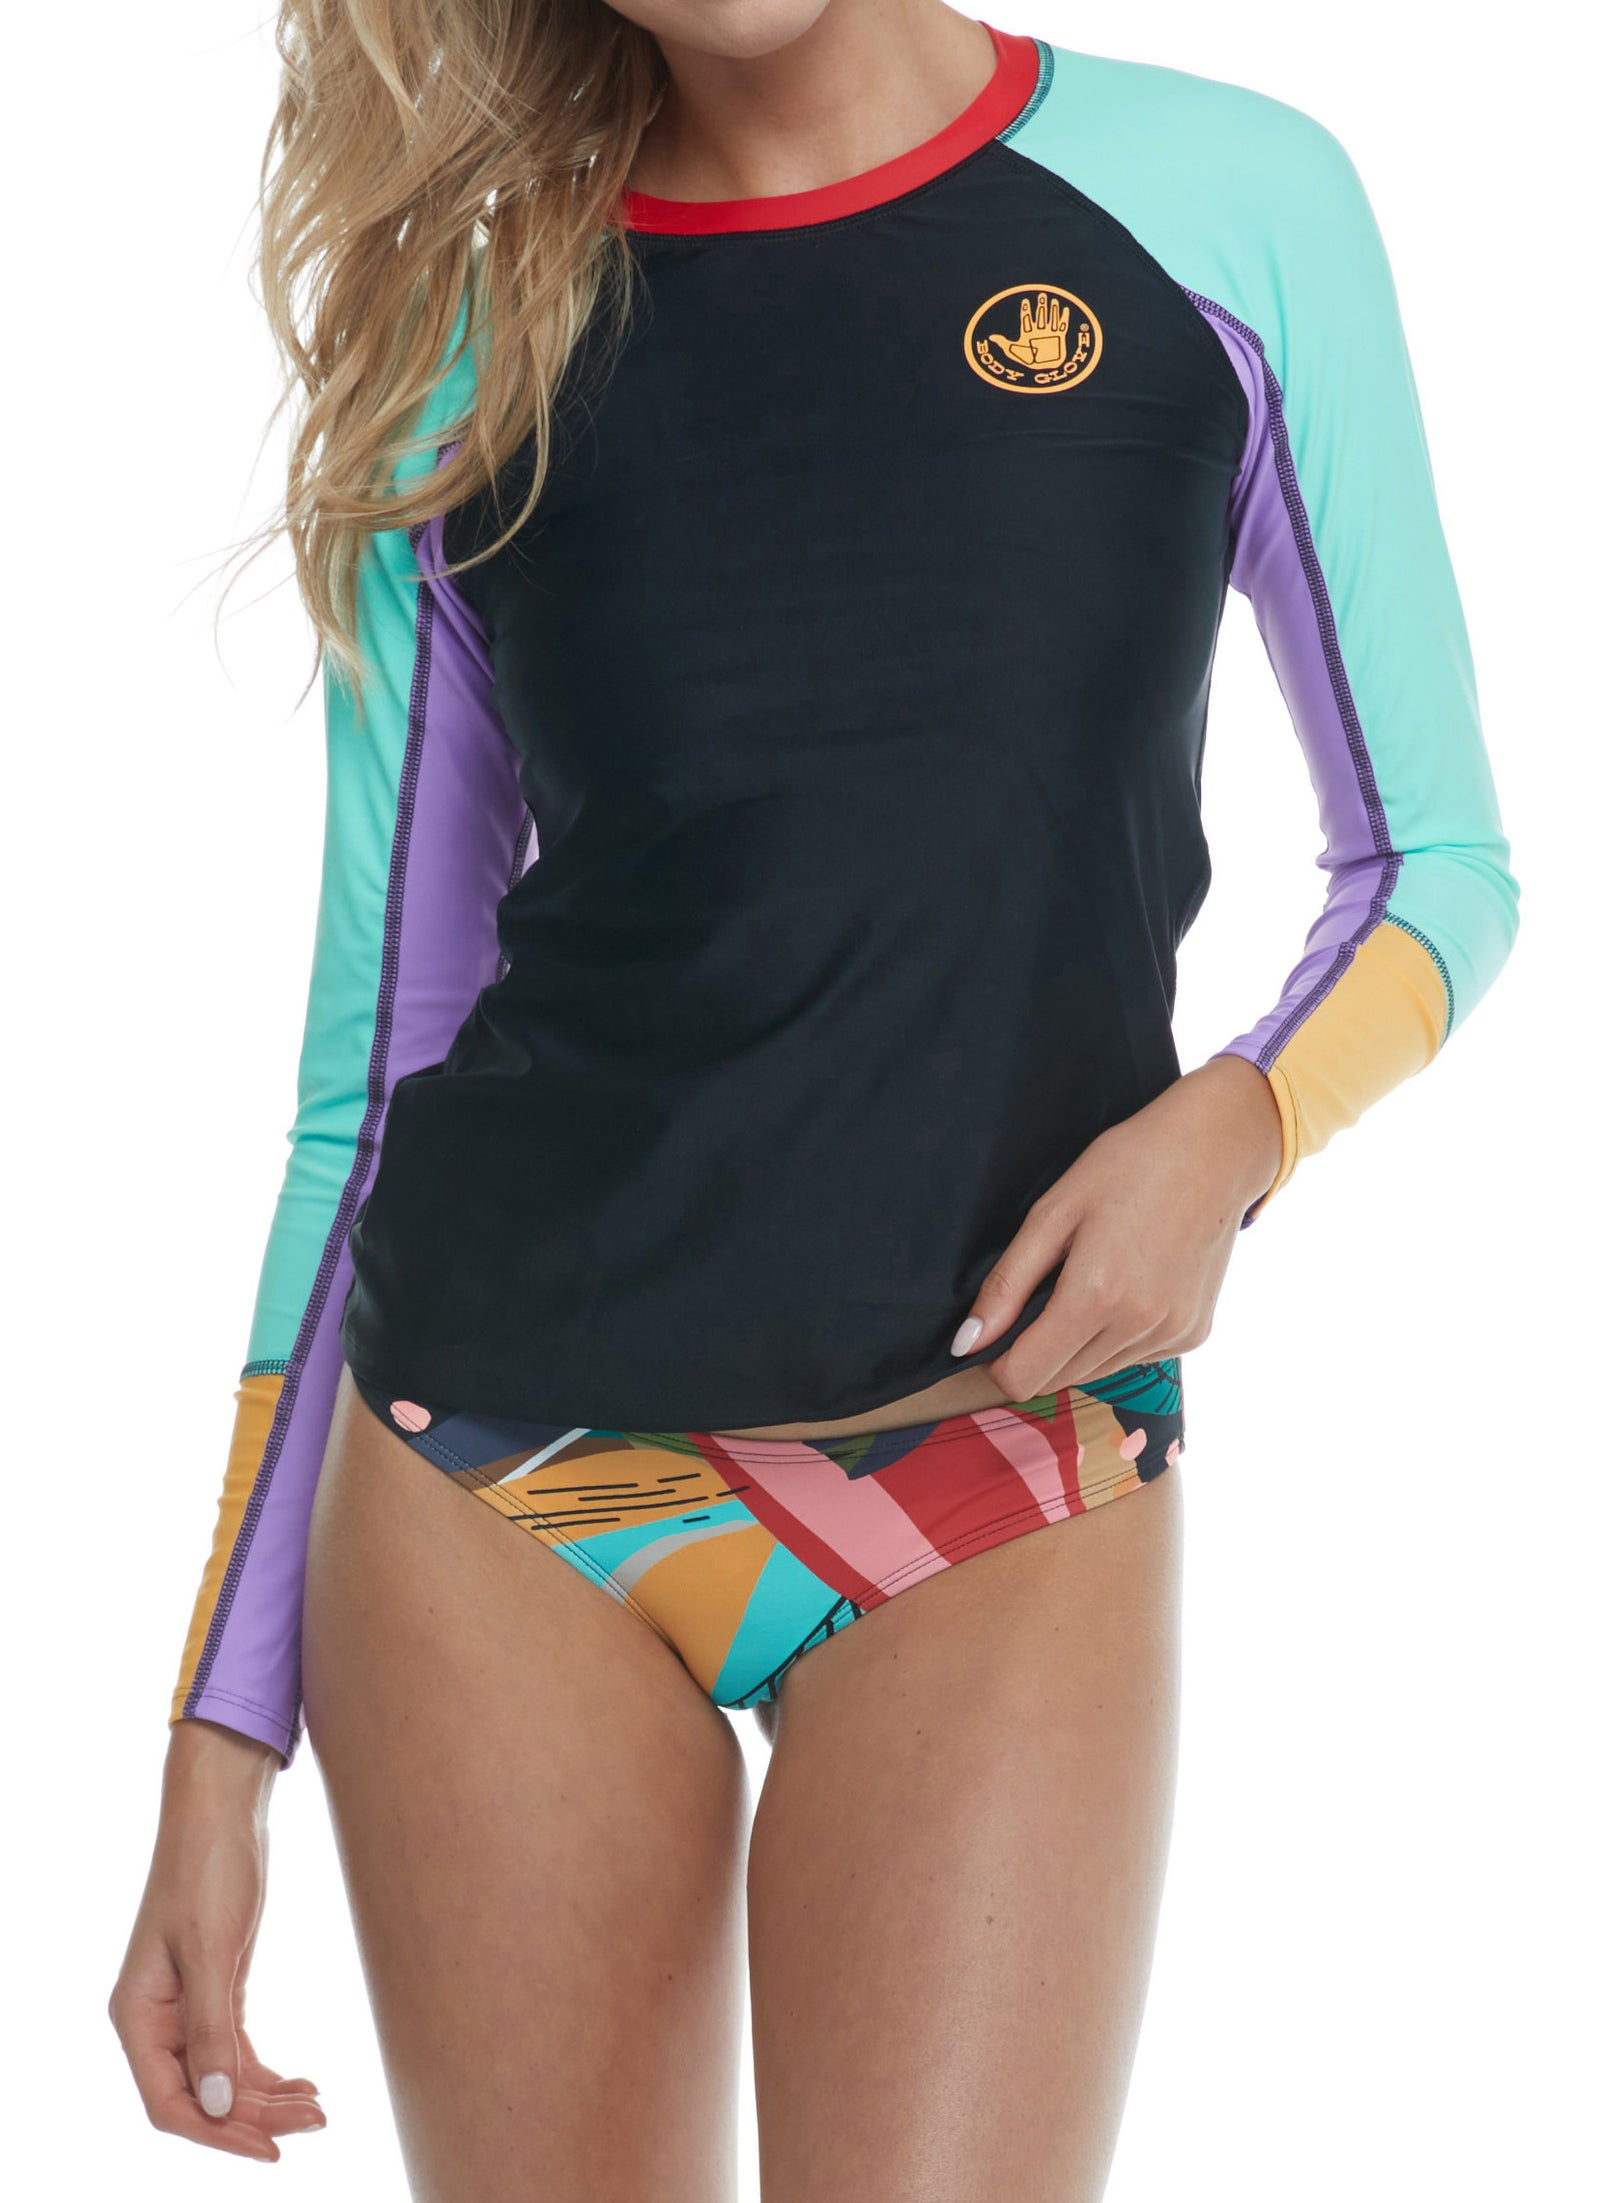 Hero Rashguard top; Rashguard ,UPF 50, long sleeves, crew neck, colorblock inserts ,flatlock seams